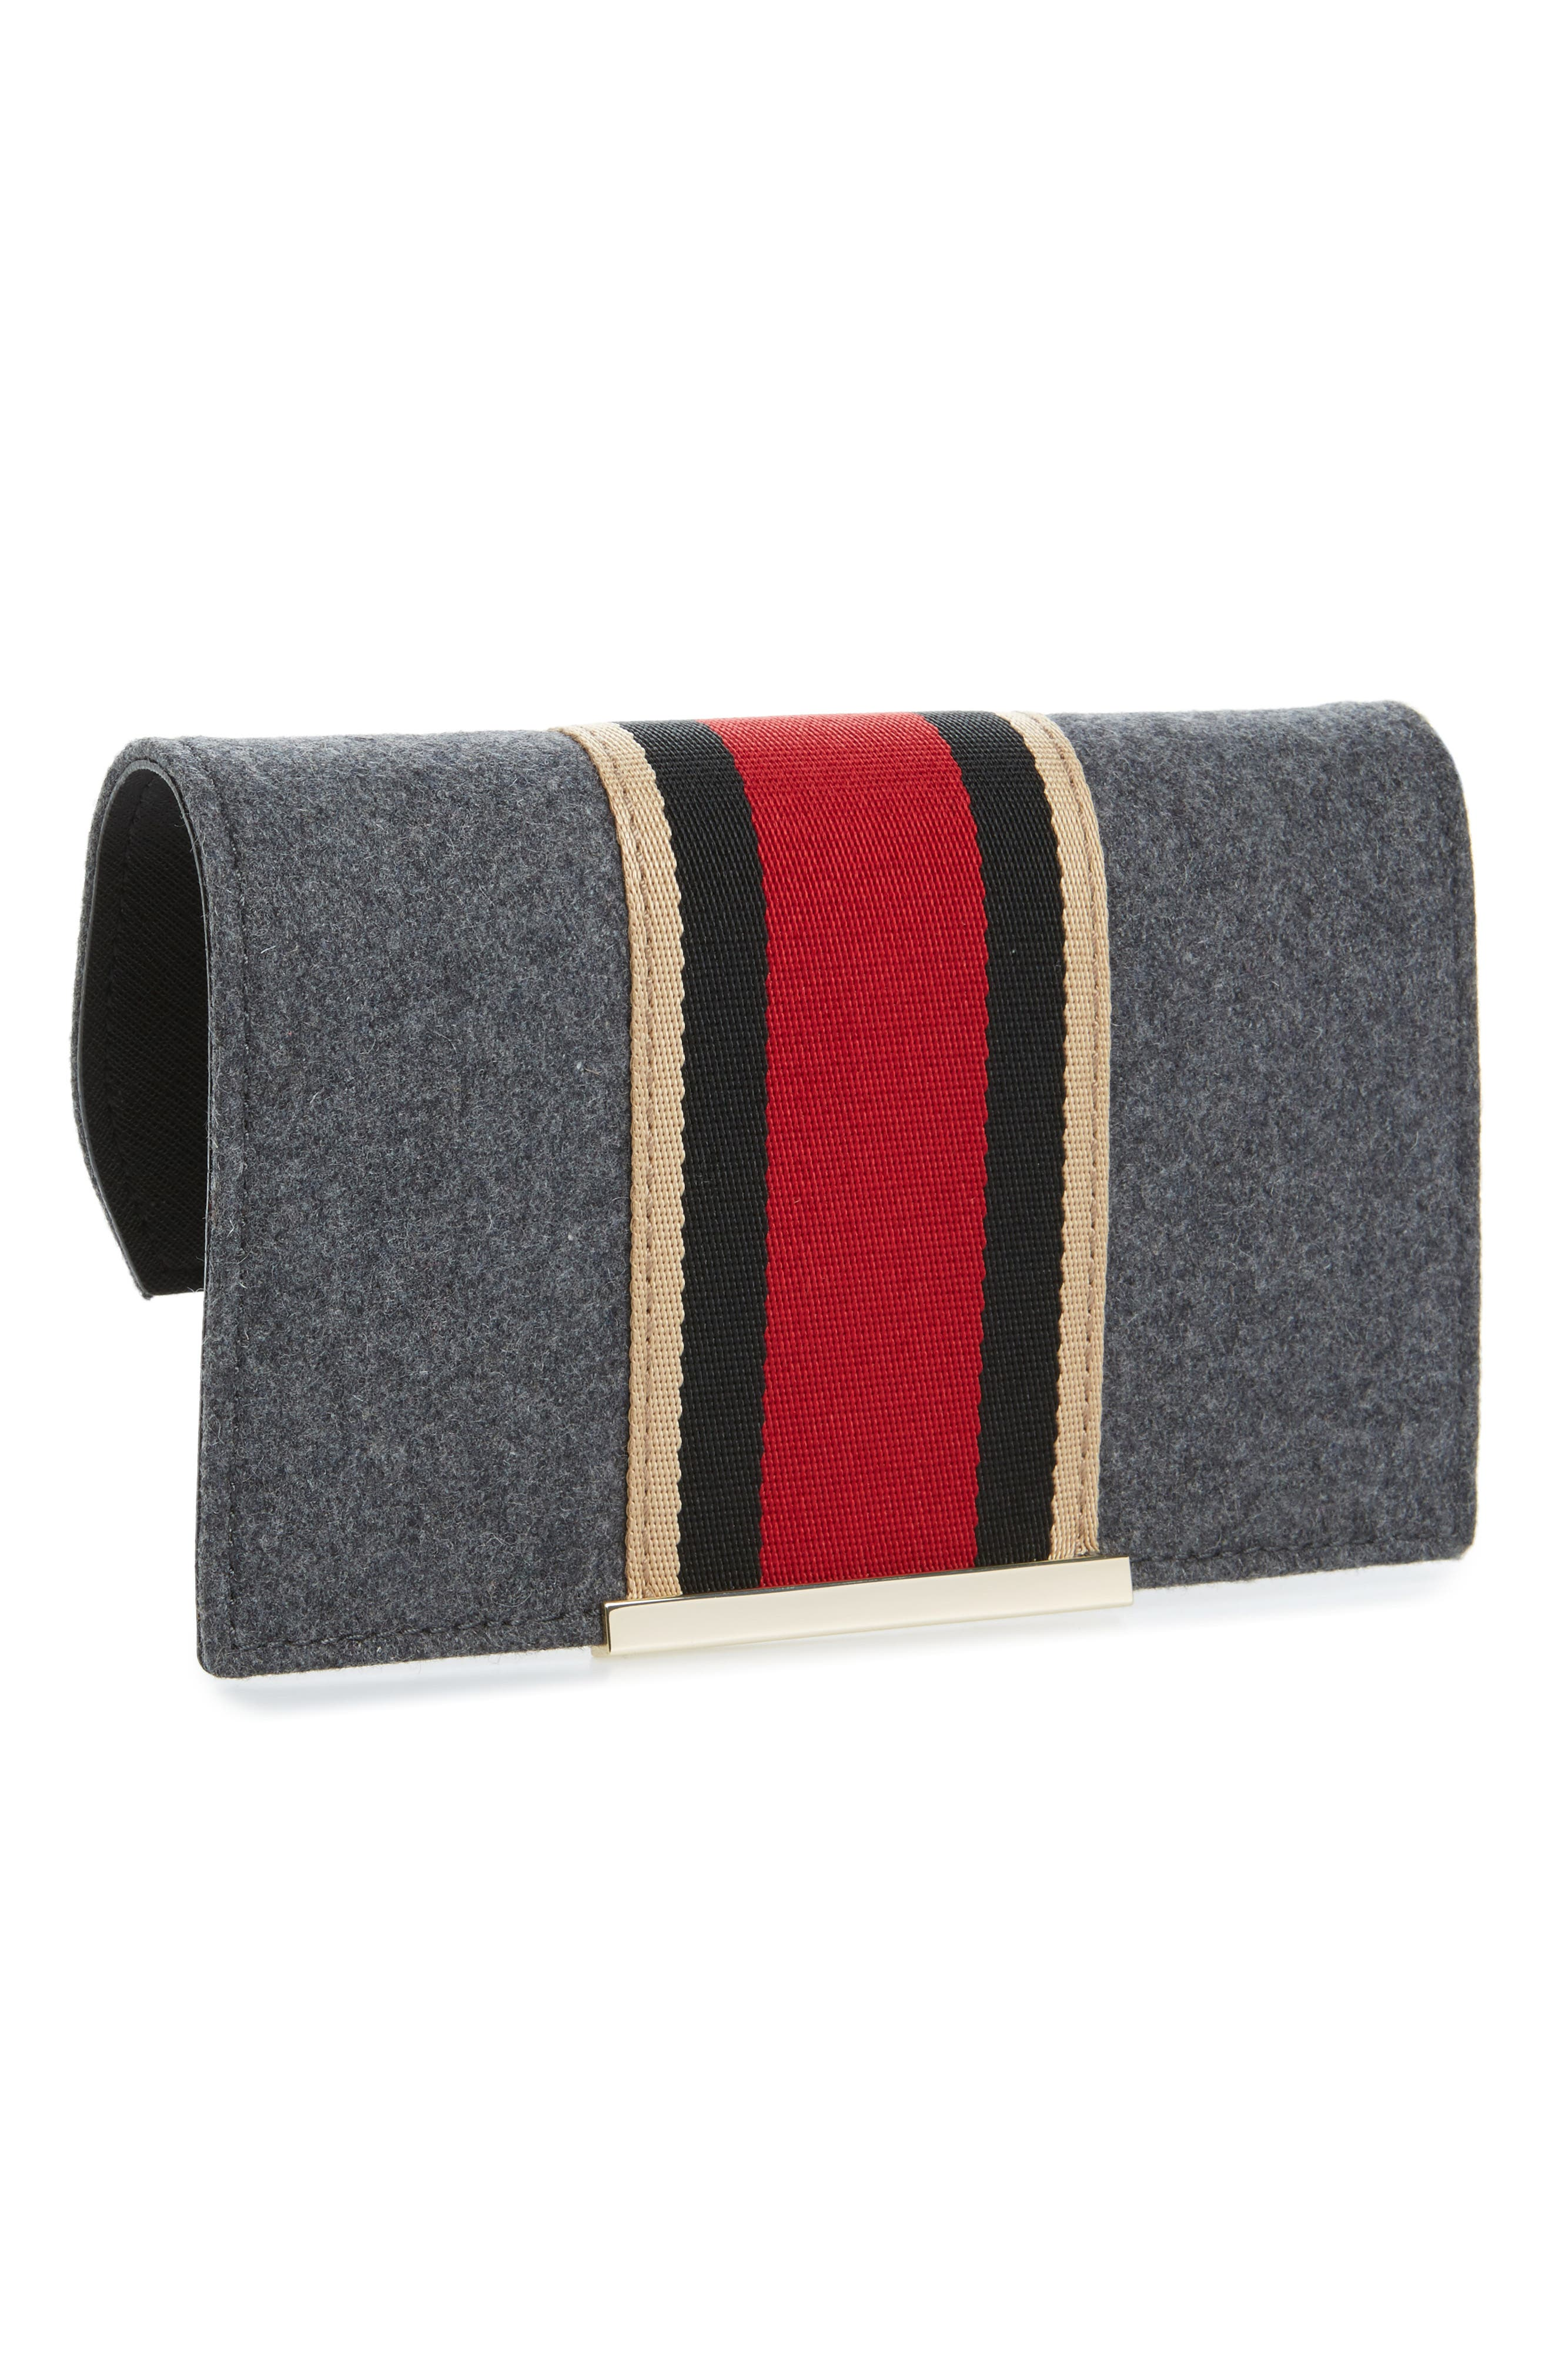 Alternate Image 1 Selected - kate spade new york make it mine flannel stripe snap-on accent flap